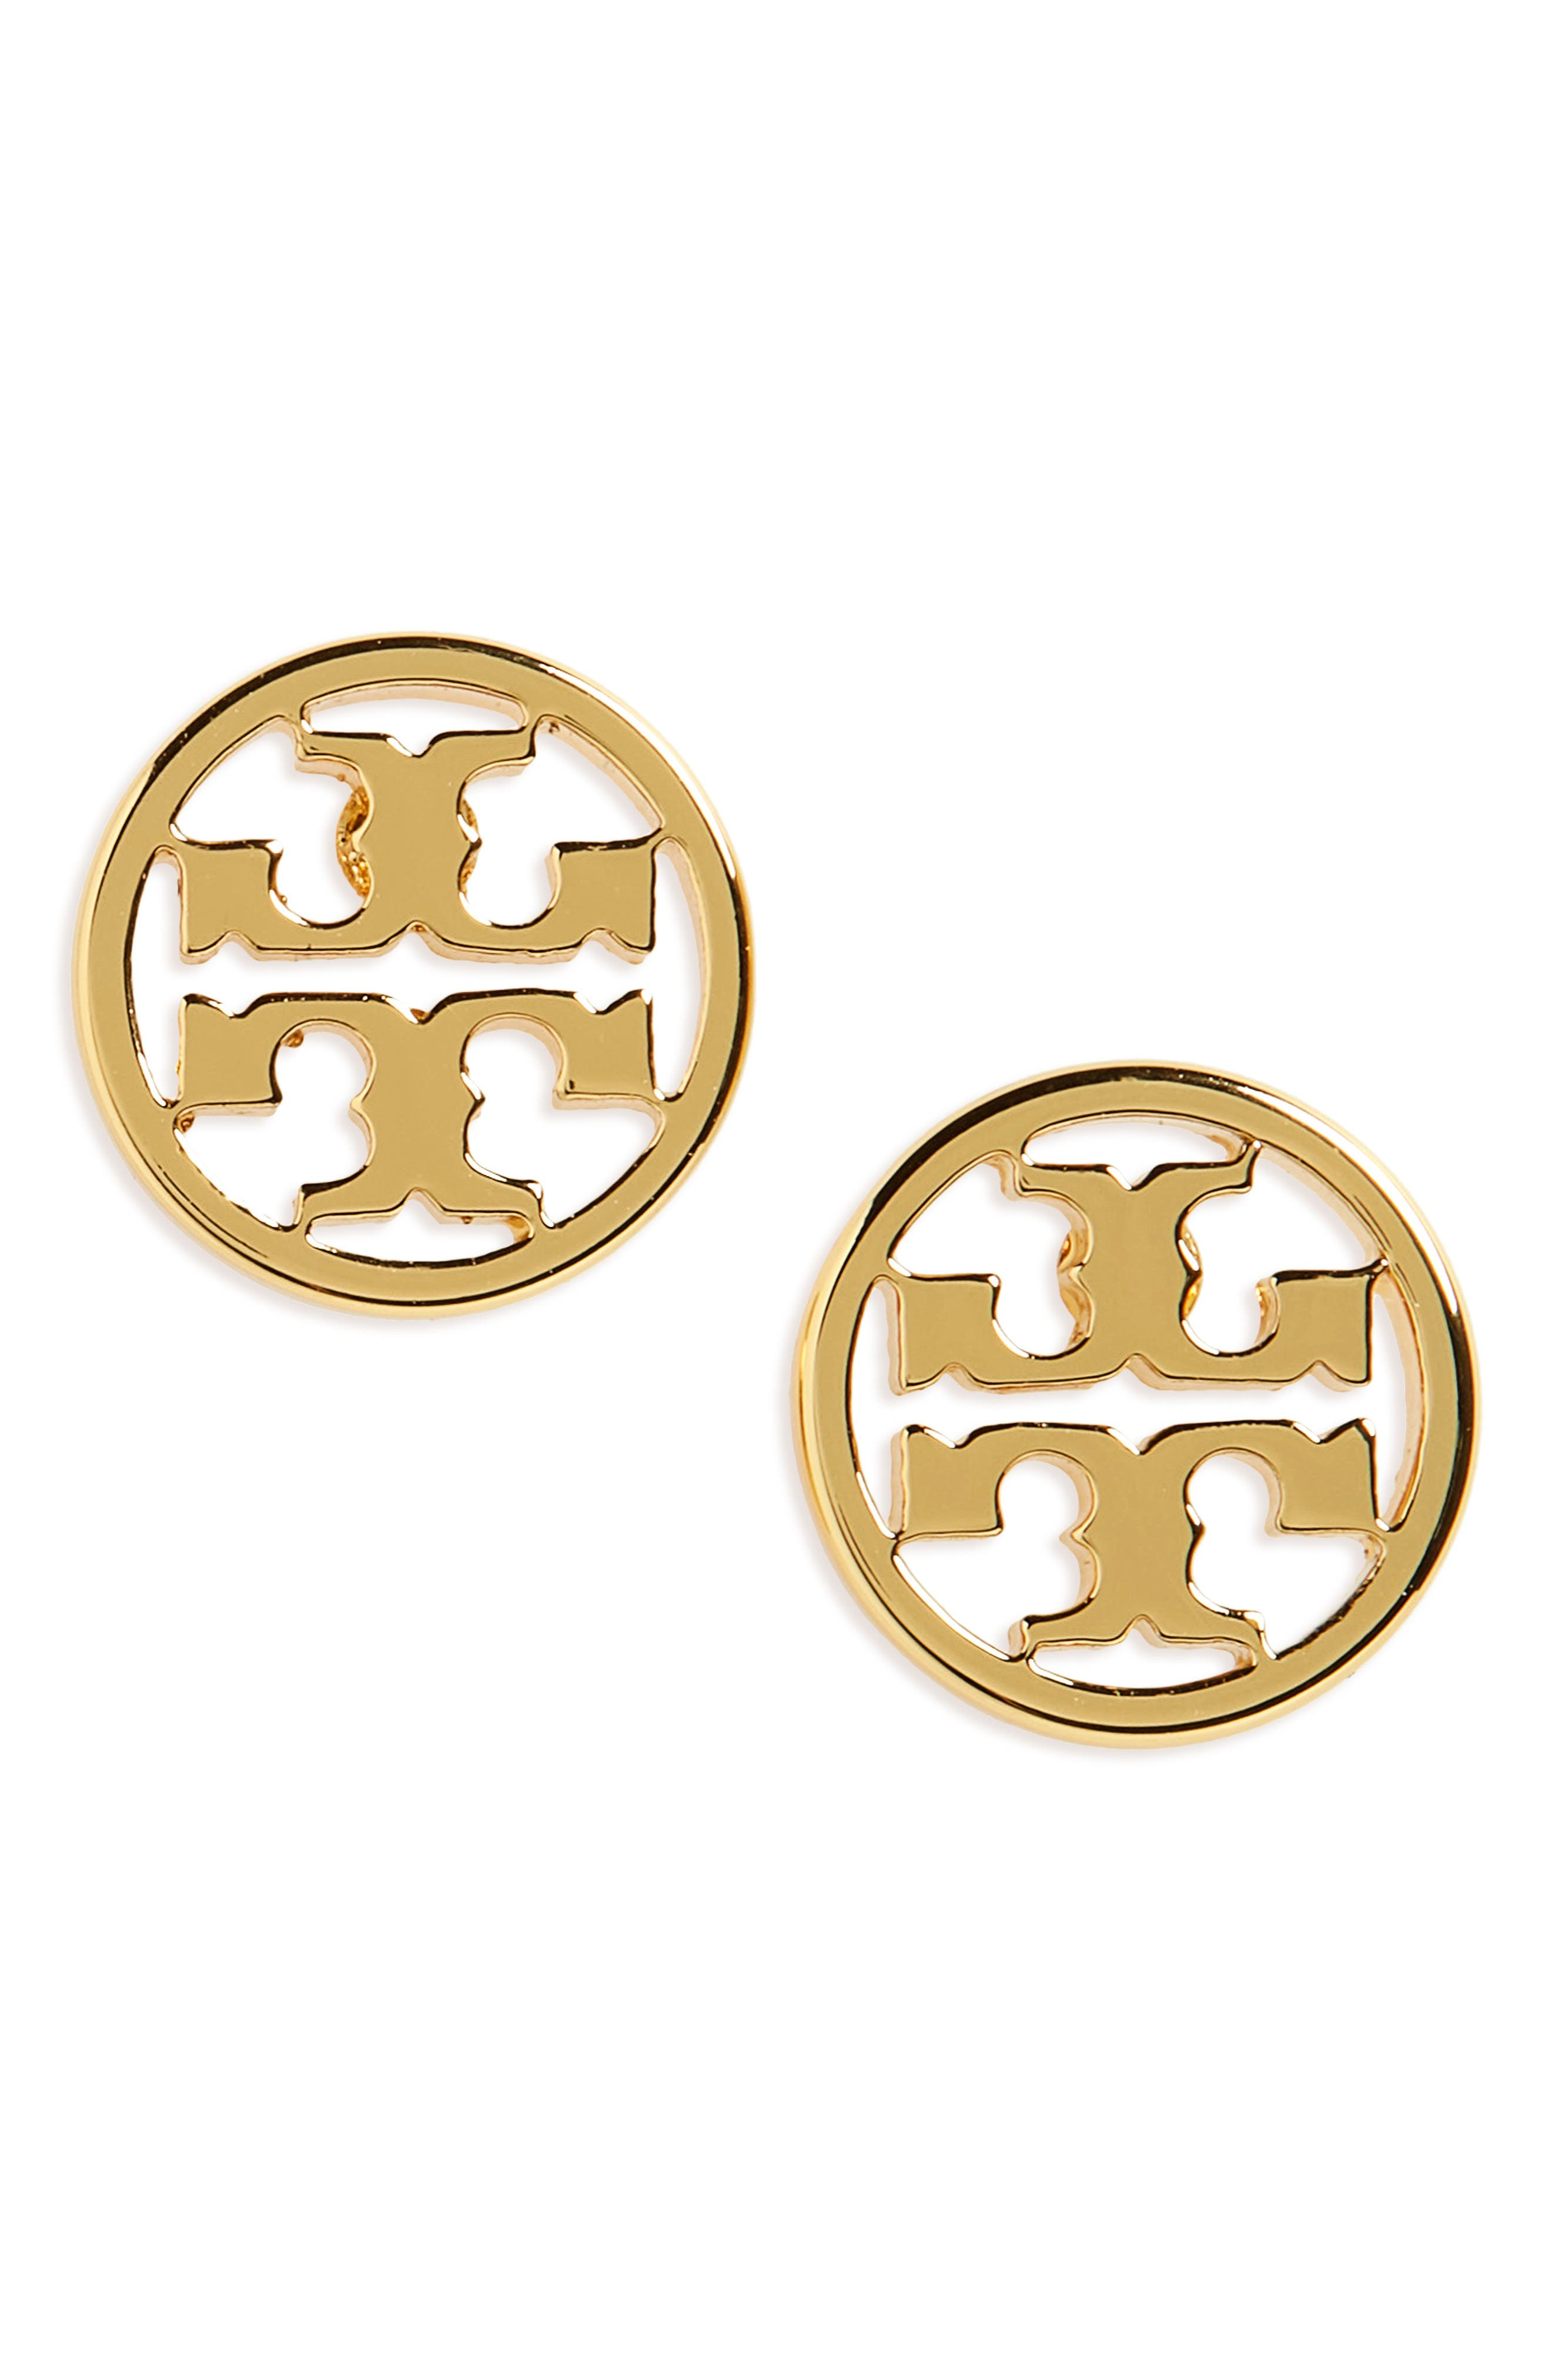 Circle Logo Stud Earrings,                             Main thumbnail 1, color,                             TORY GOLD